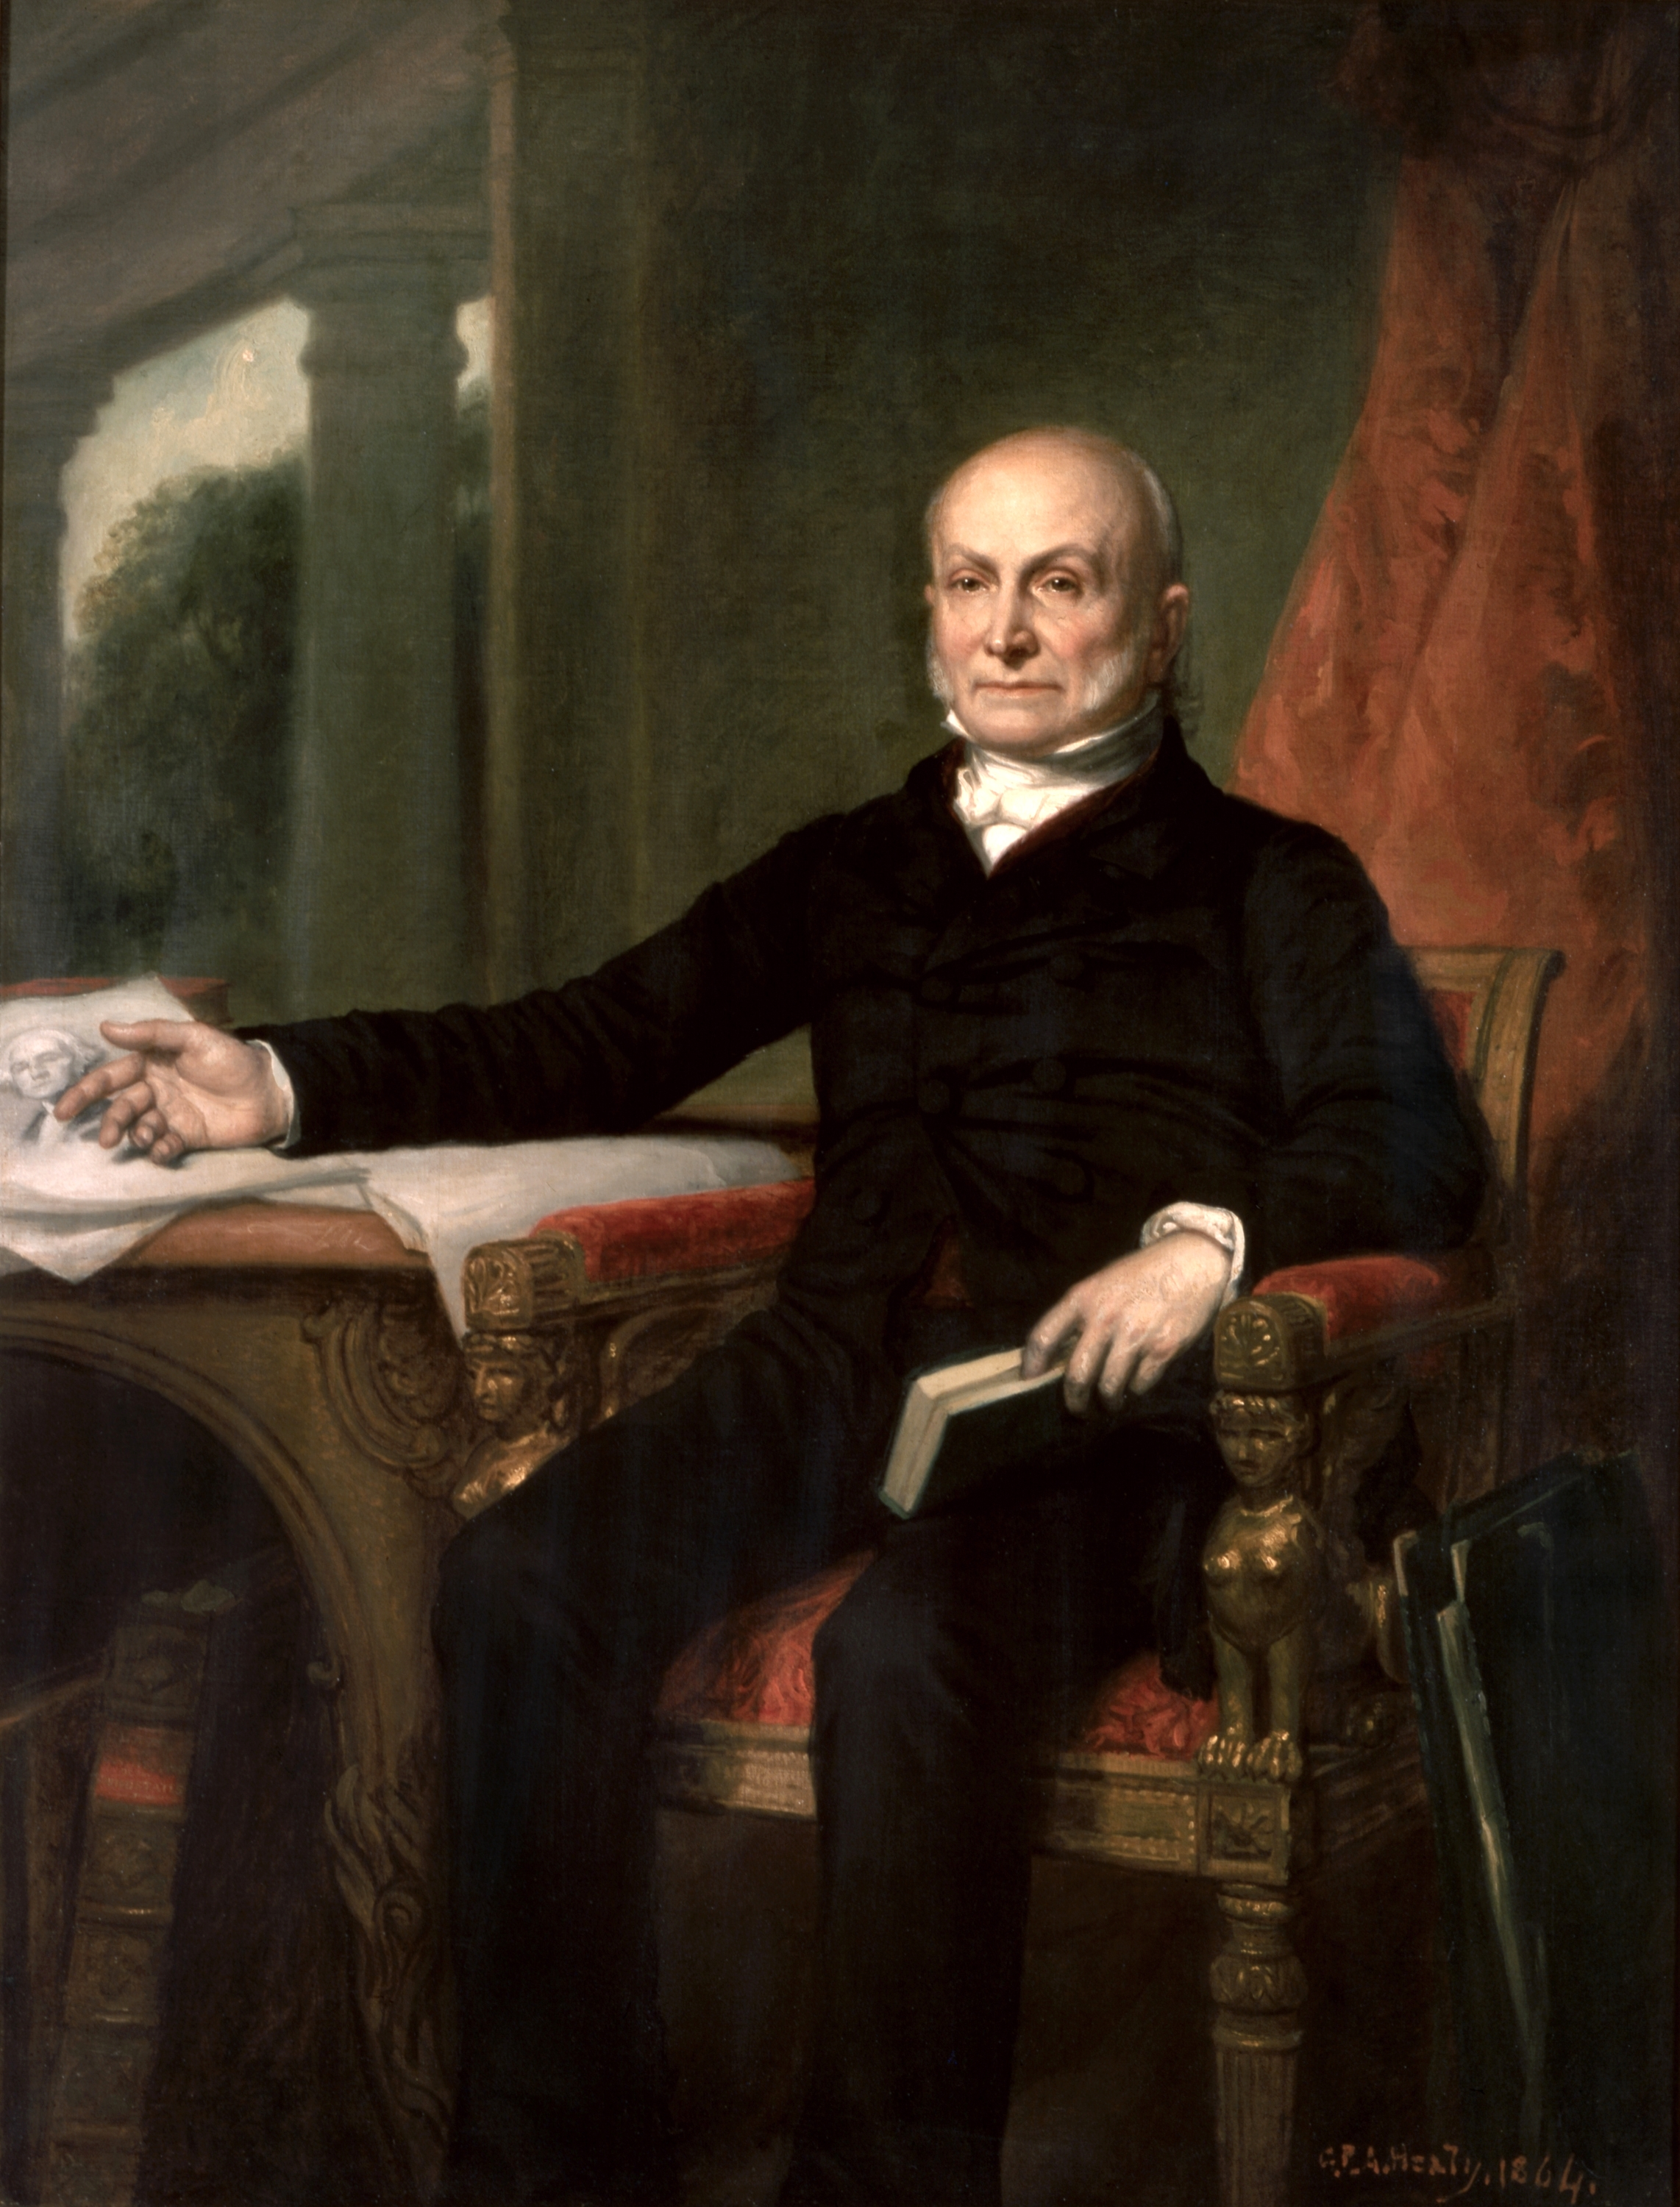 John_Quincy_Adams_by_GPA_Healy%2C_1858.jpg